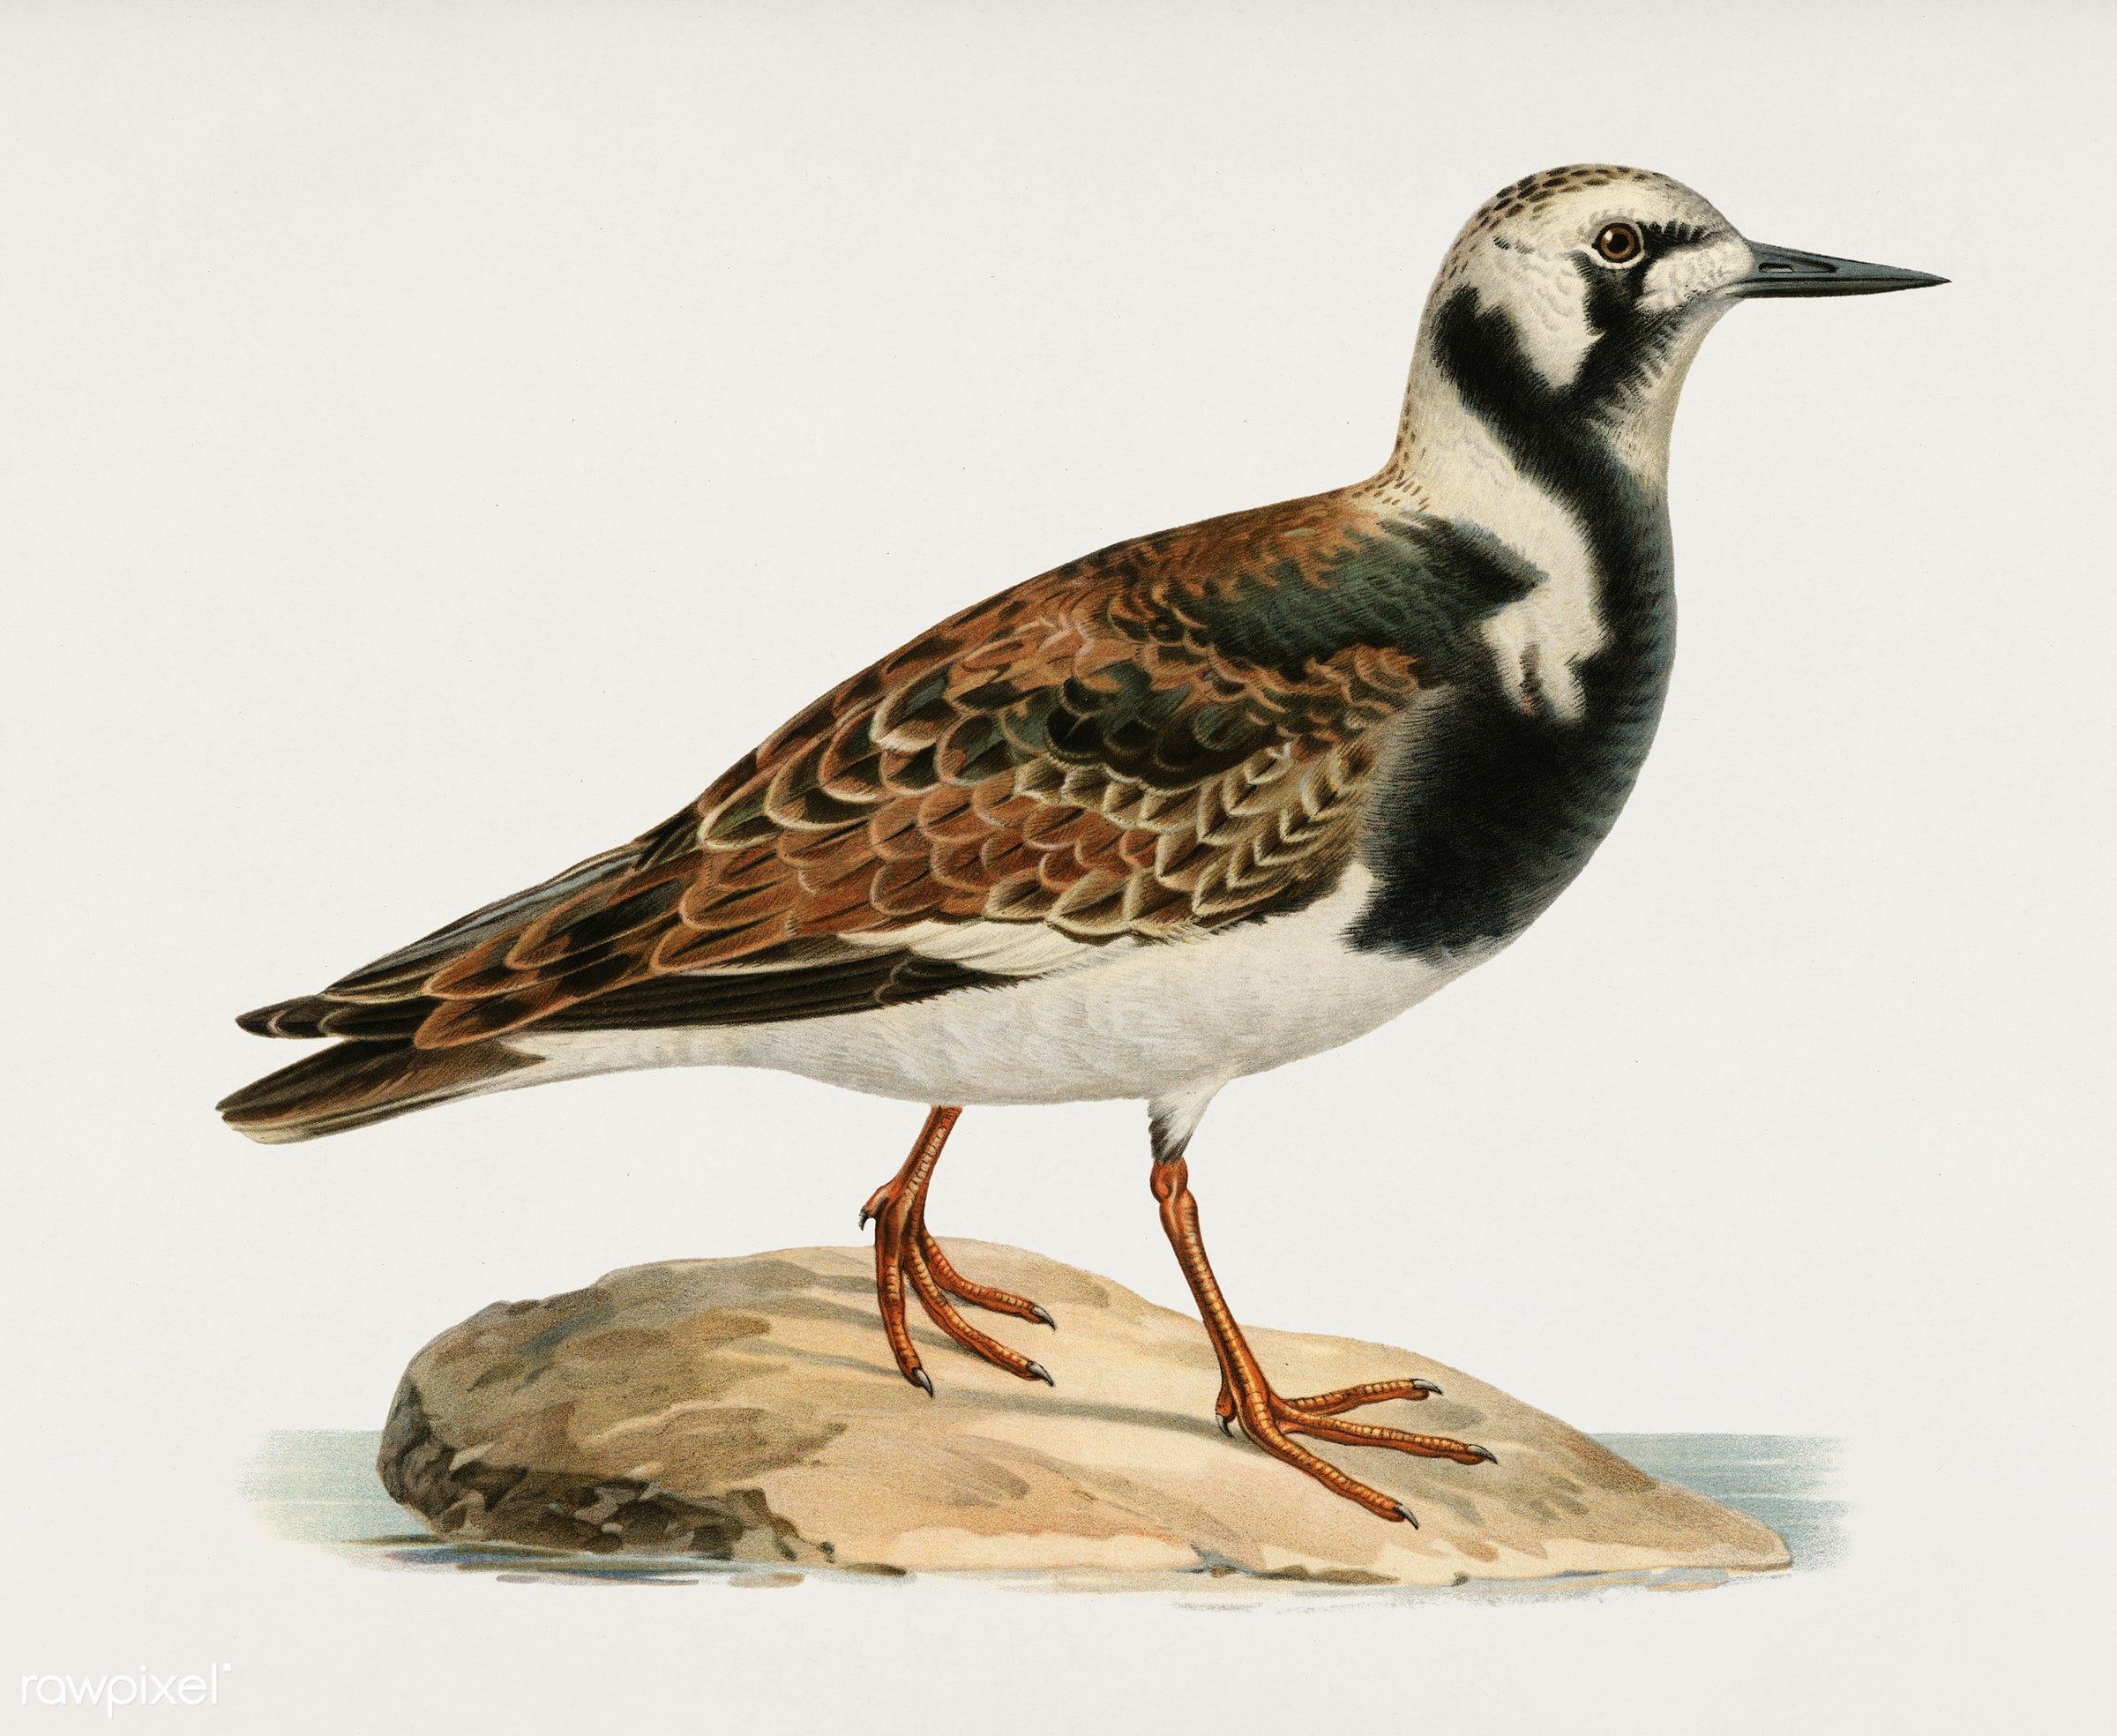 Ruddy turnstone ♂ (Arenaria interpres) illustrated by the von Wright brothers. Digitally enhanced from our own 1929 folio...